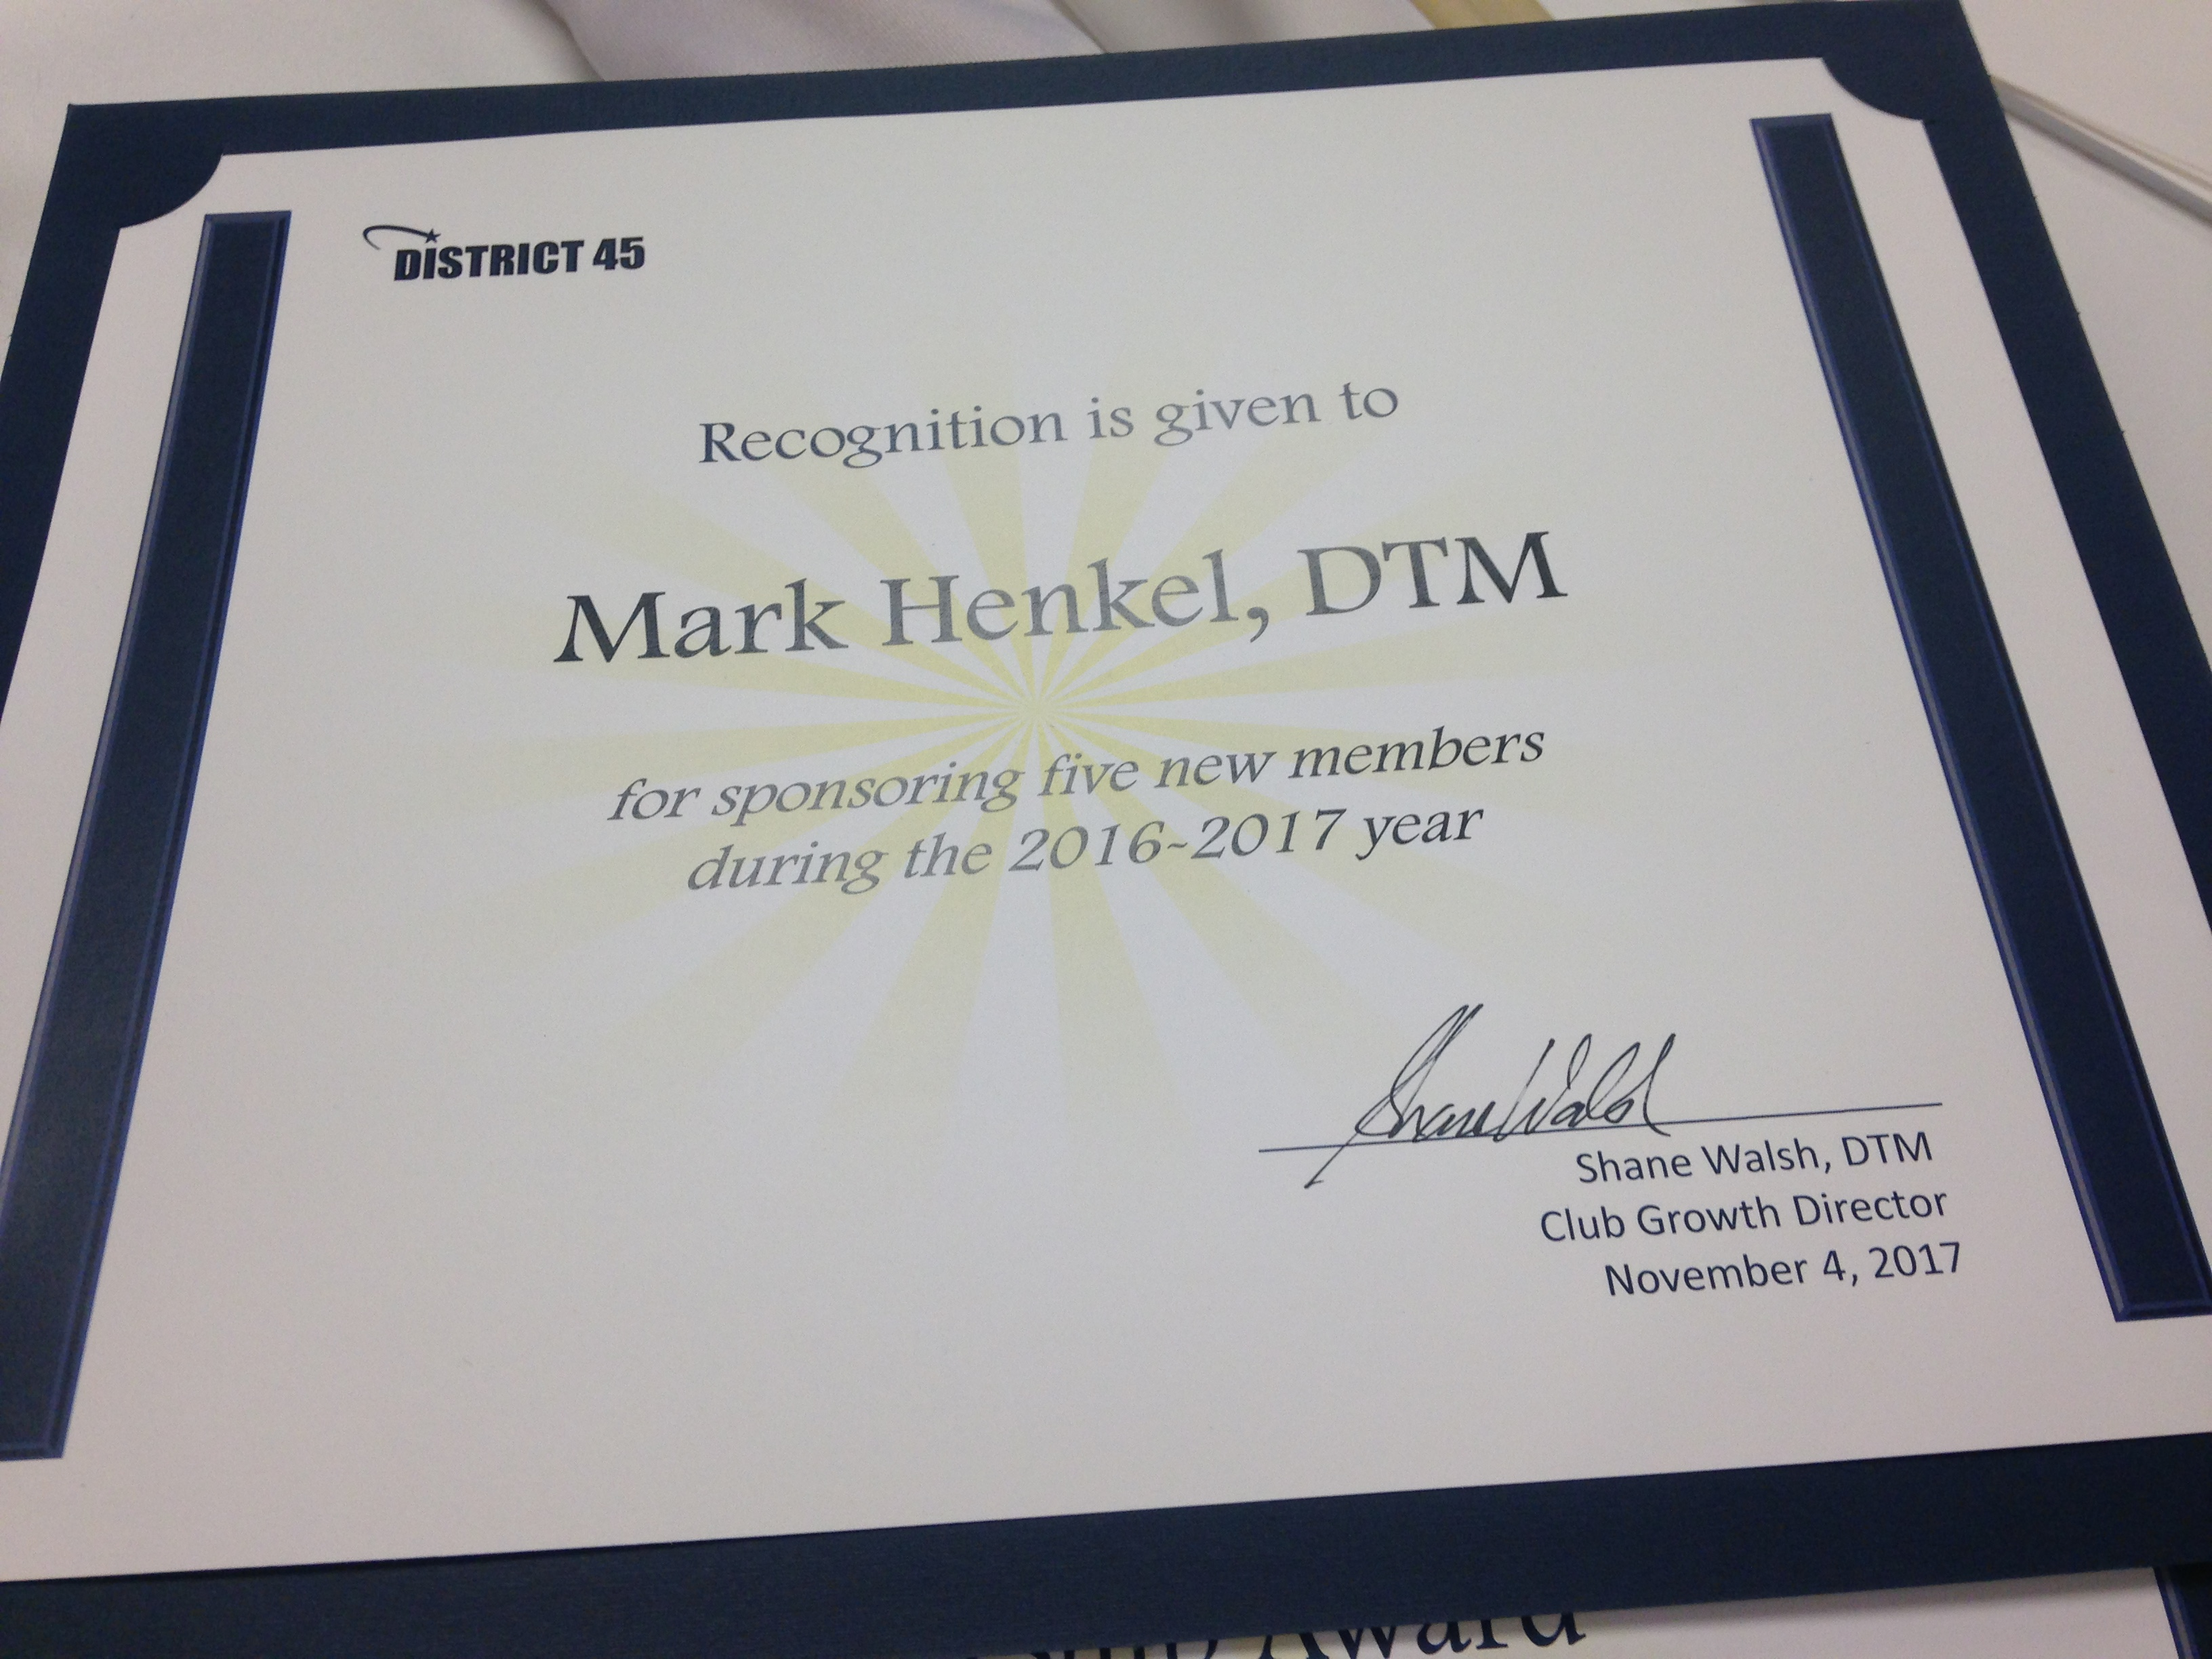 Mark Henkel – 2016 – Sponsor 5 or More award